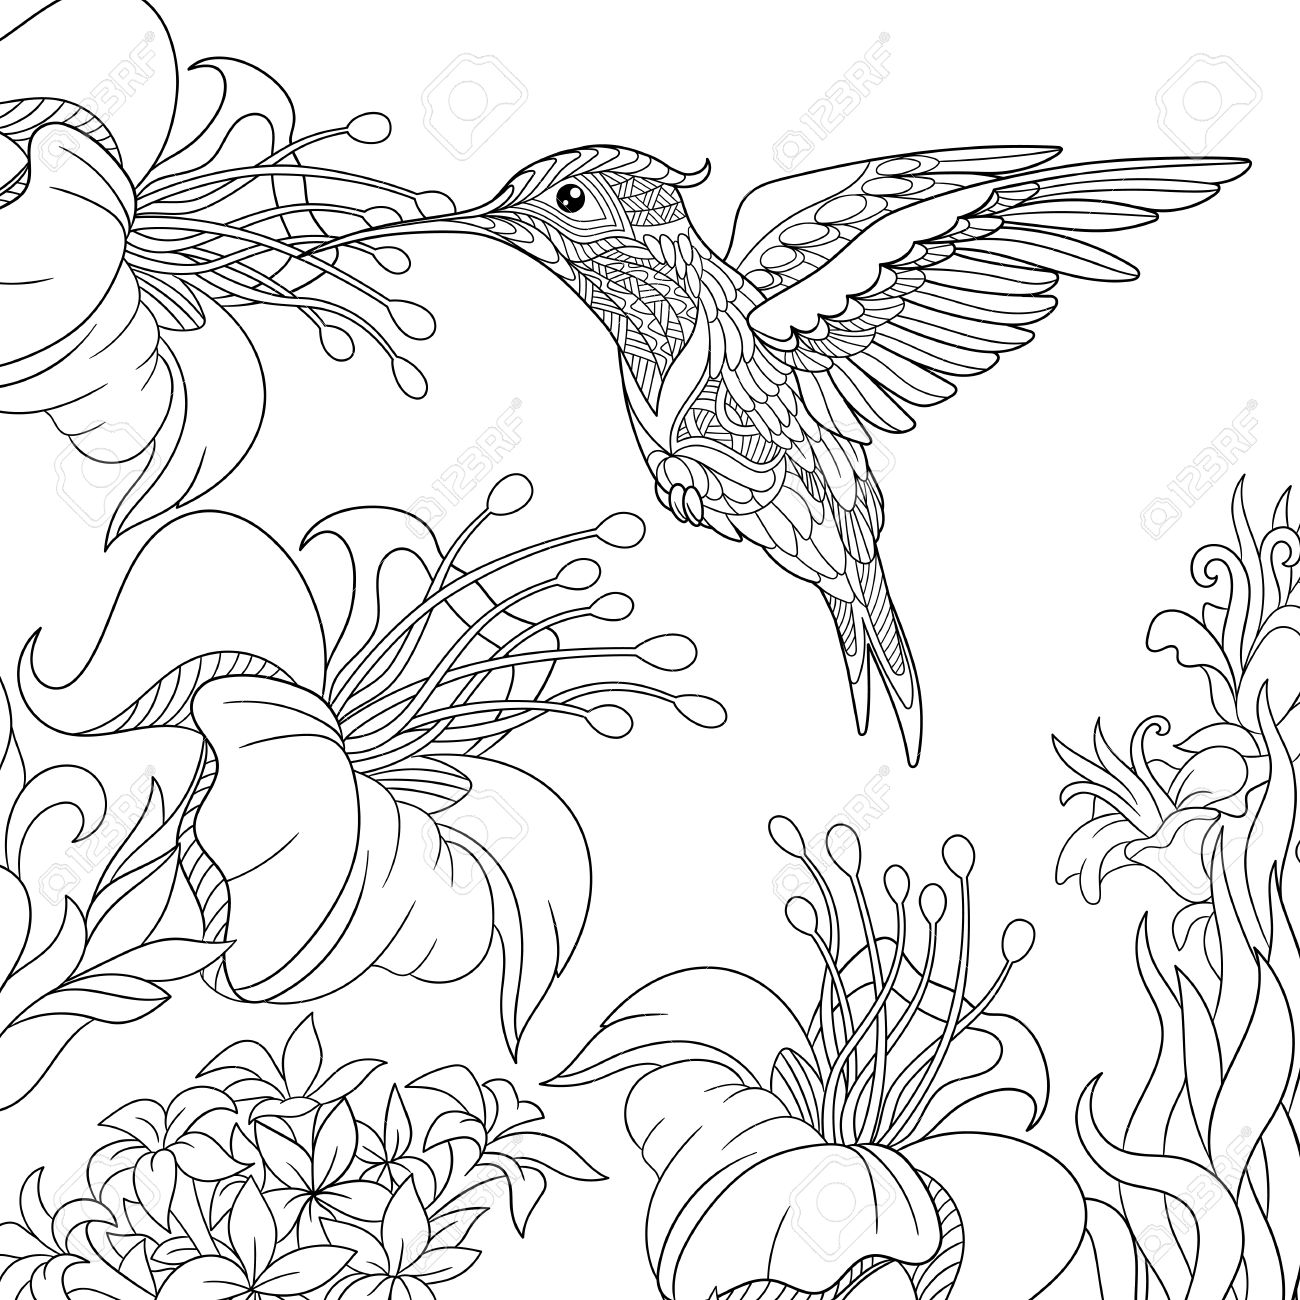 Charmant Coloring Page Of Hummingbird And Hibiscus Flowers. Freehand Sketch Drawing  For Adult Antistress Colouring Book